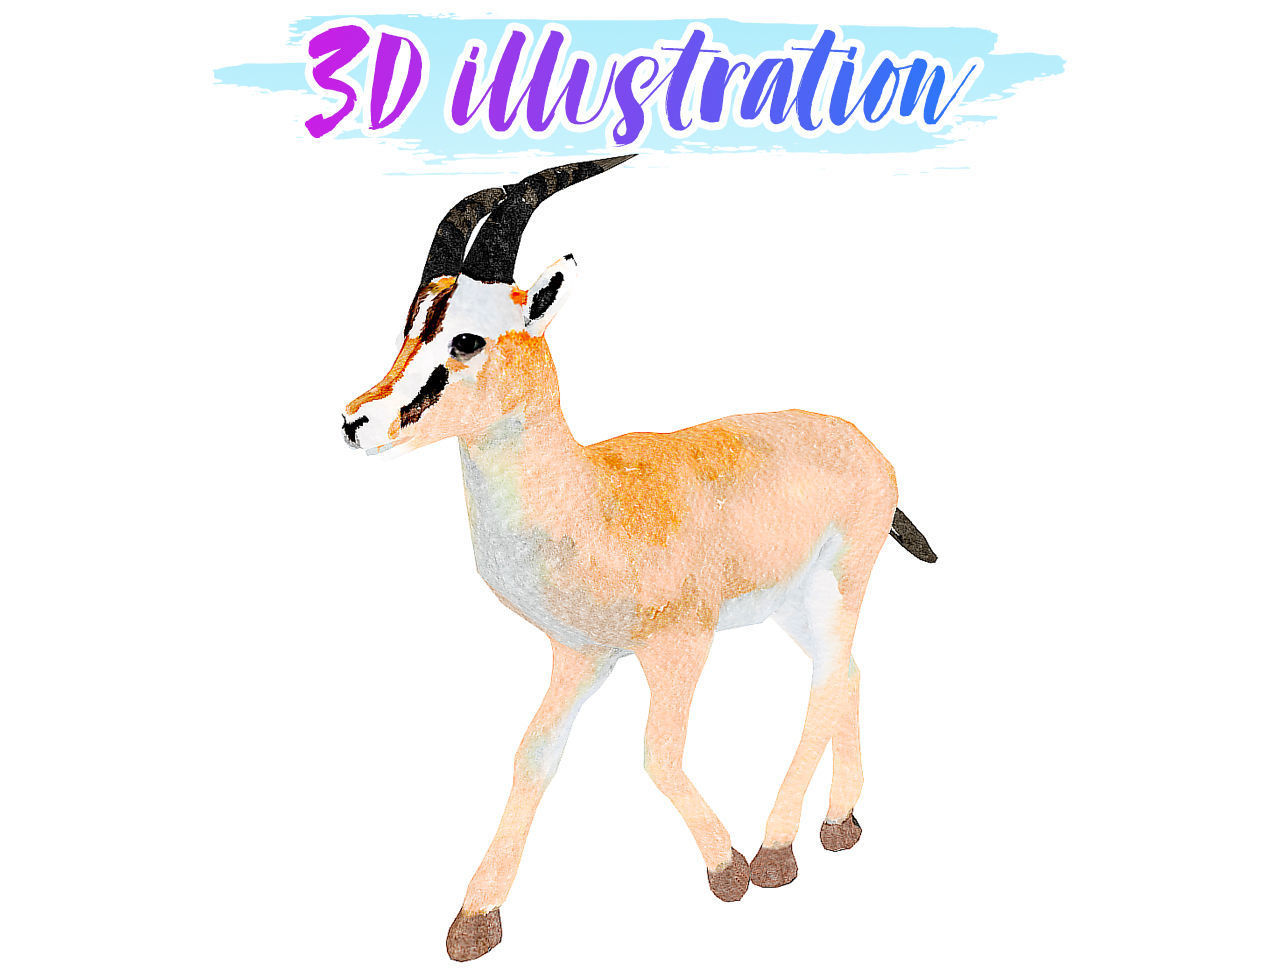 Low Poly Gazelle 2 Illustration Animated - Game Ready